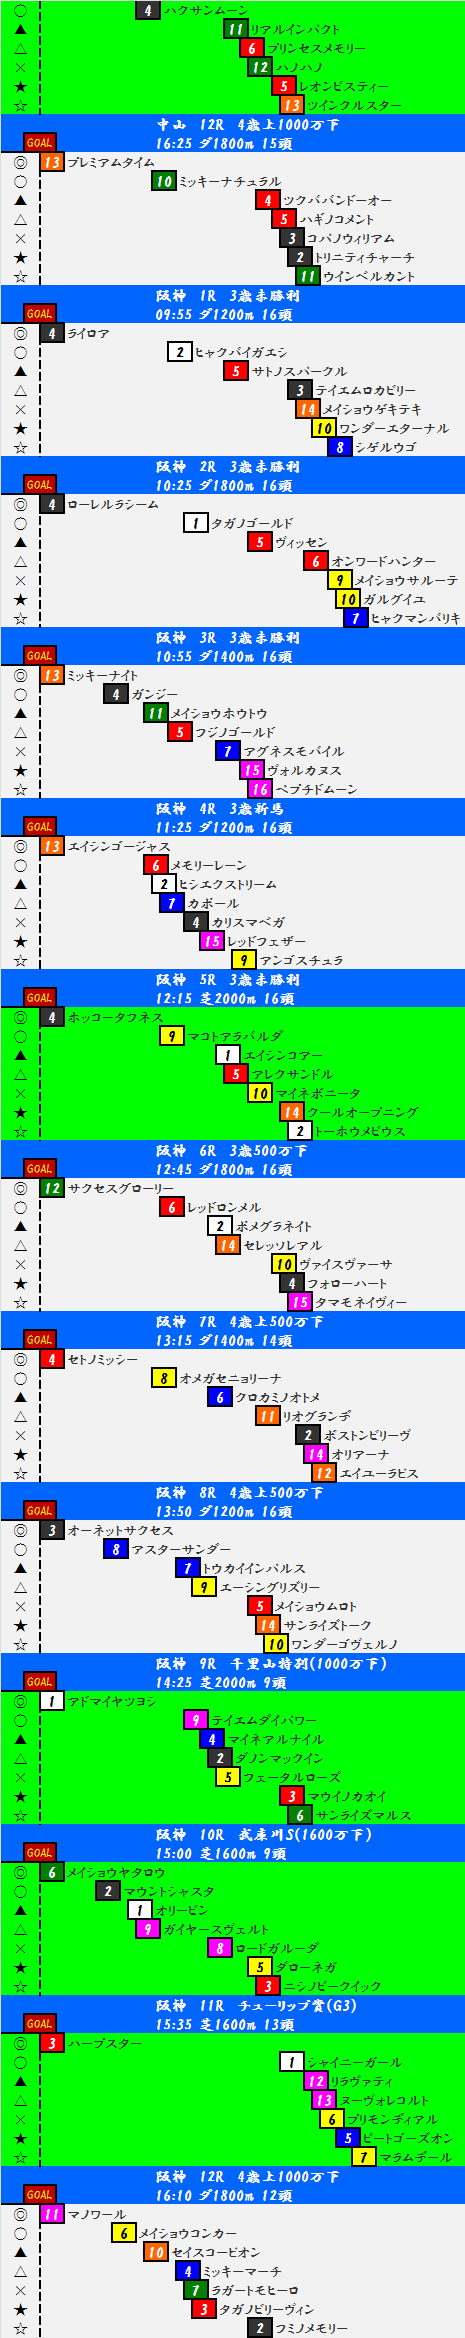 201403082.png